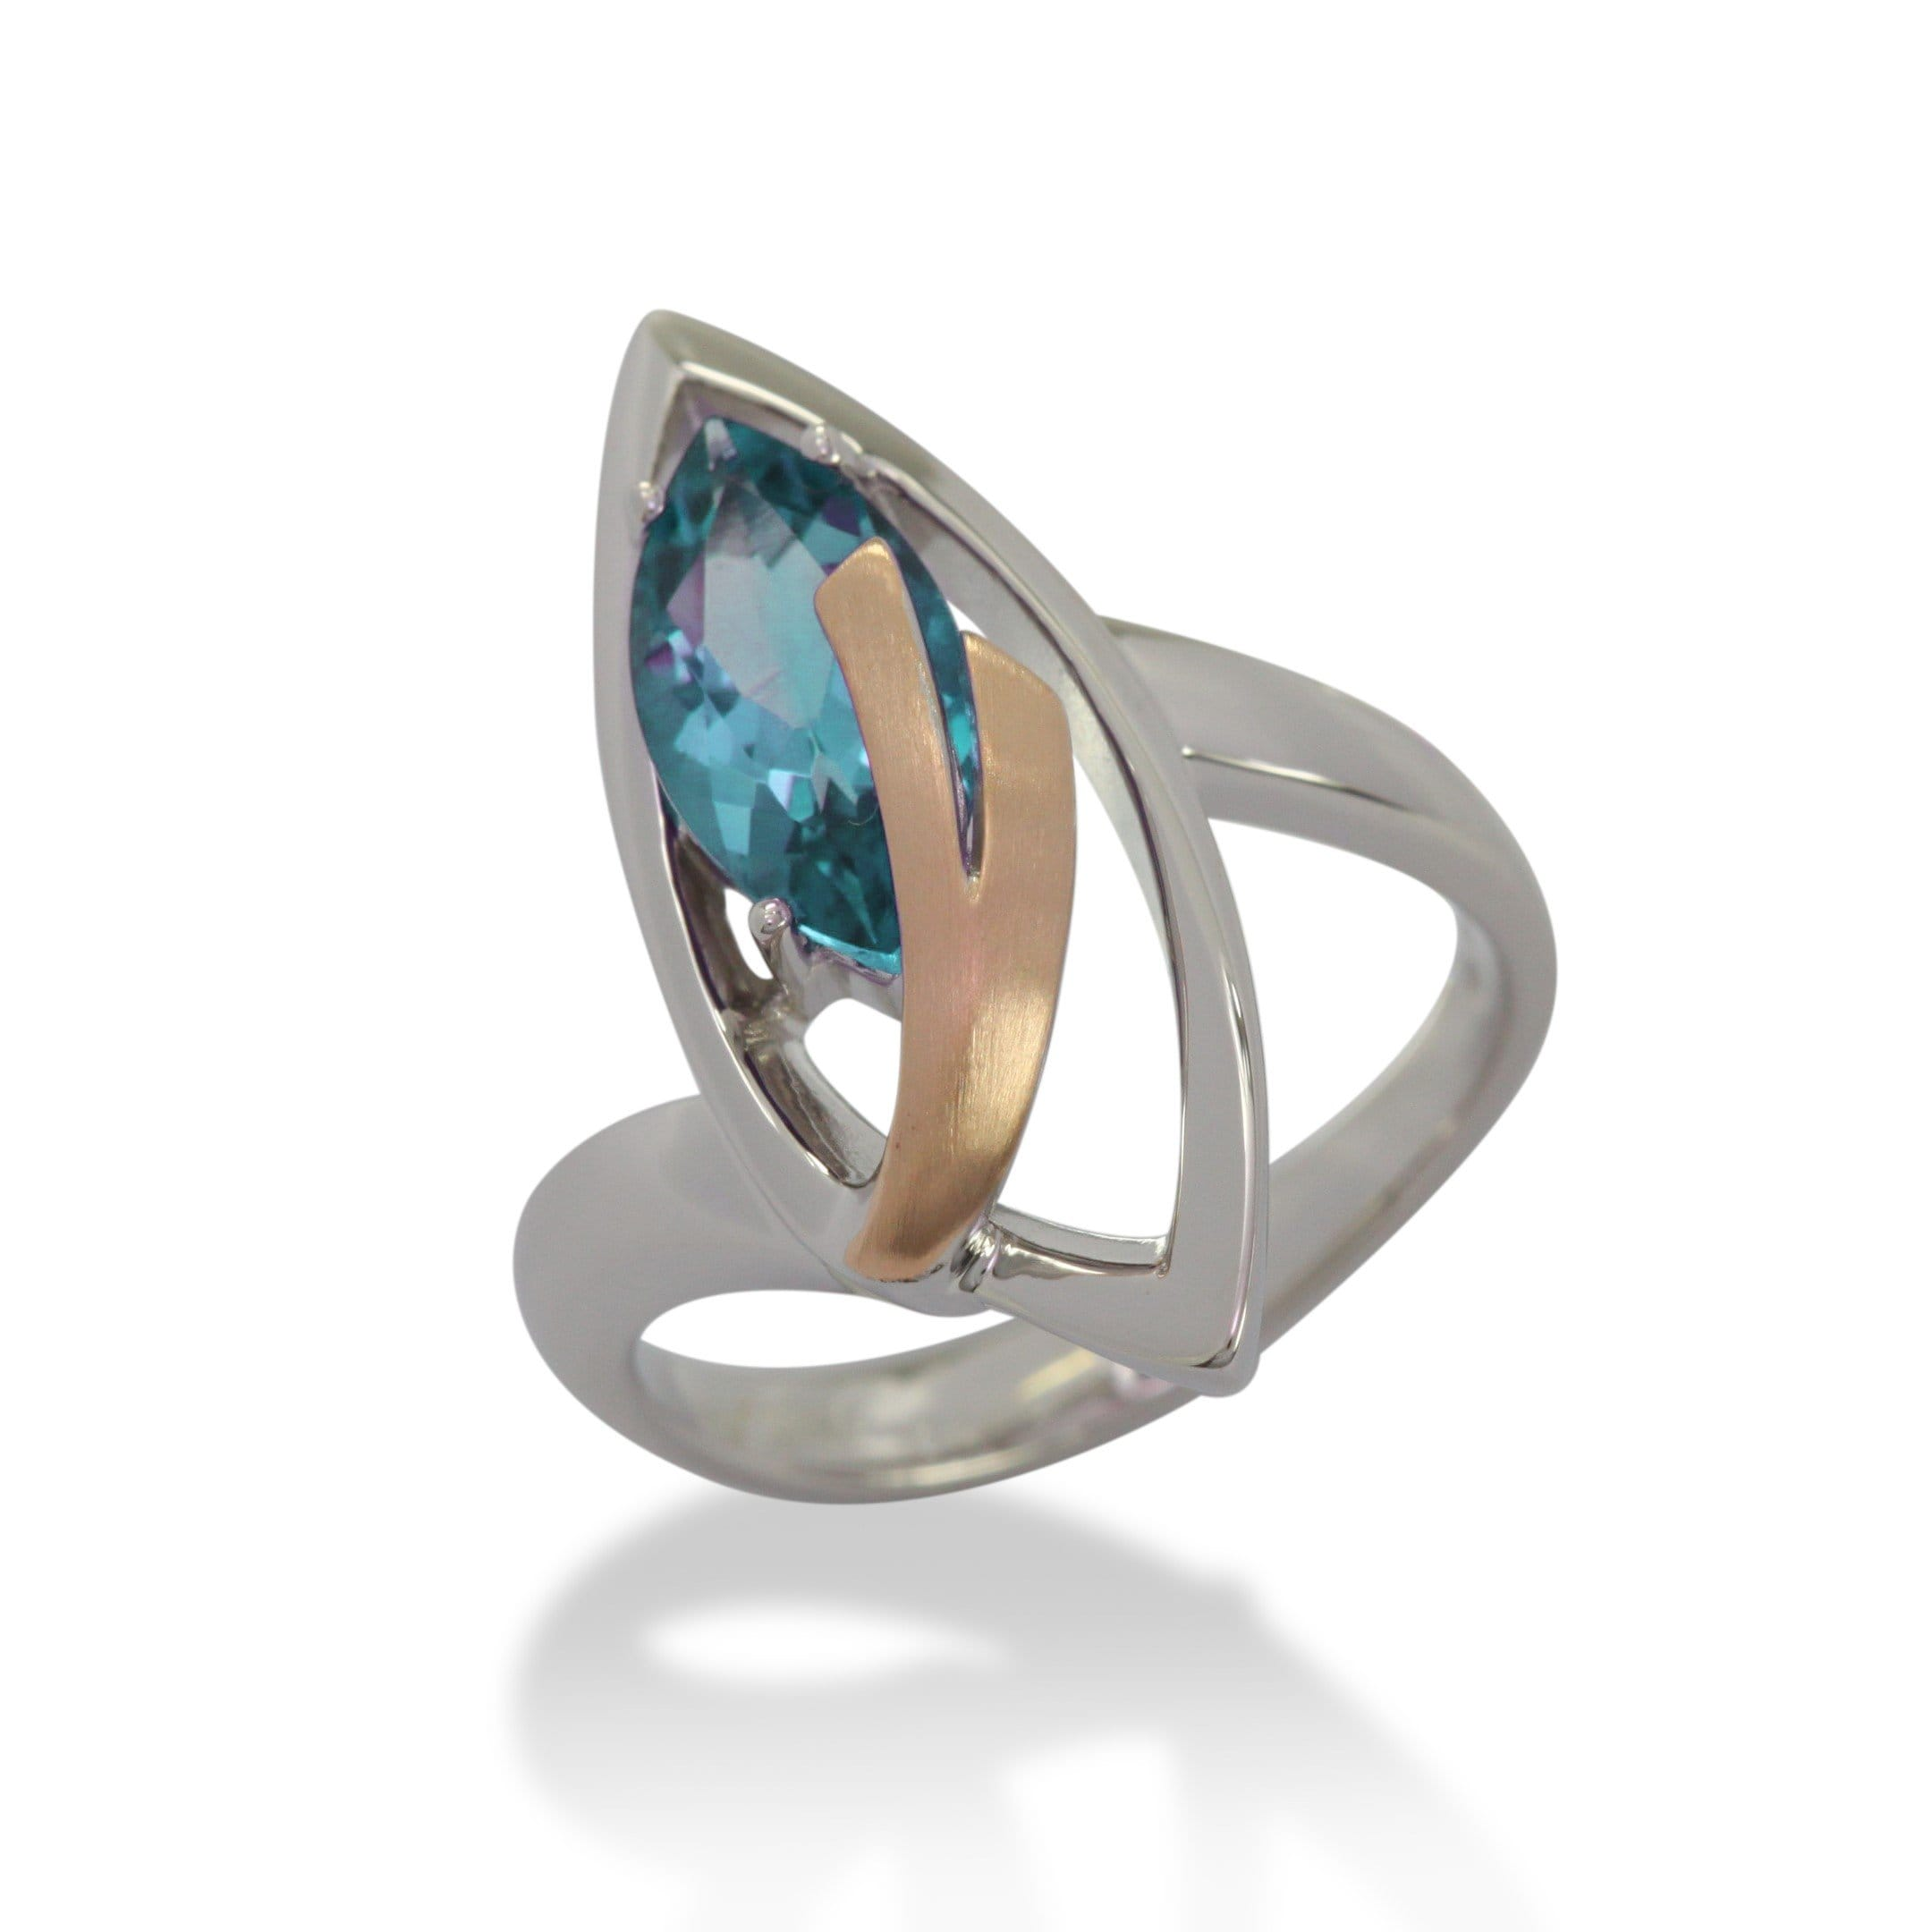 Rose Gold Plated Sterling Silver Blue Topaz Ring - 42/83711-BT-Breuning-Renee Taylor Gallery